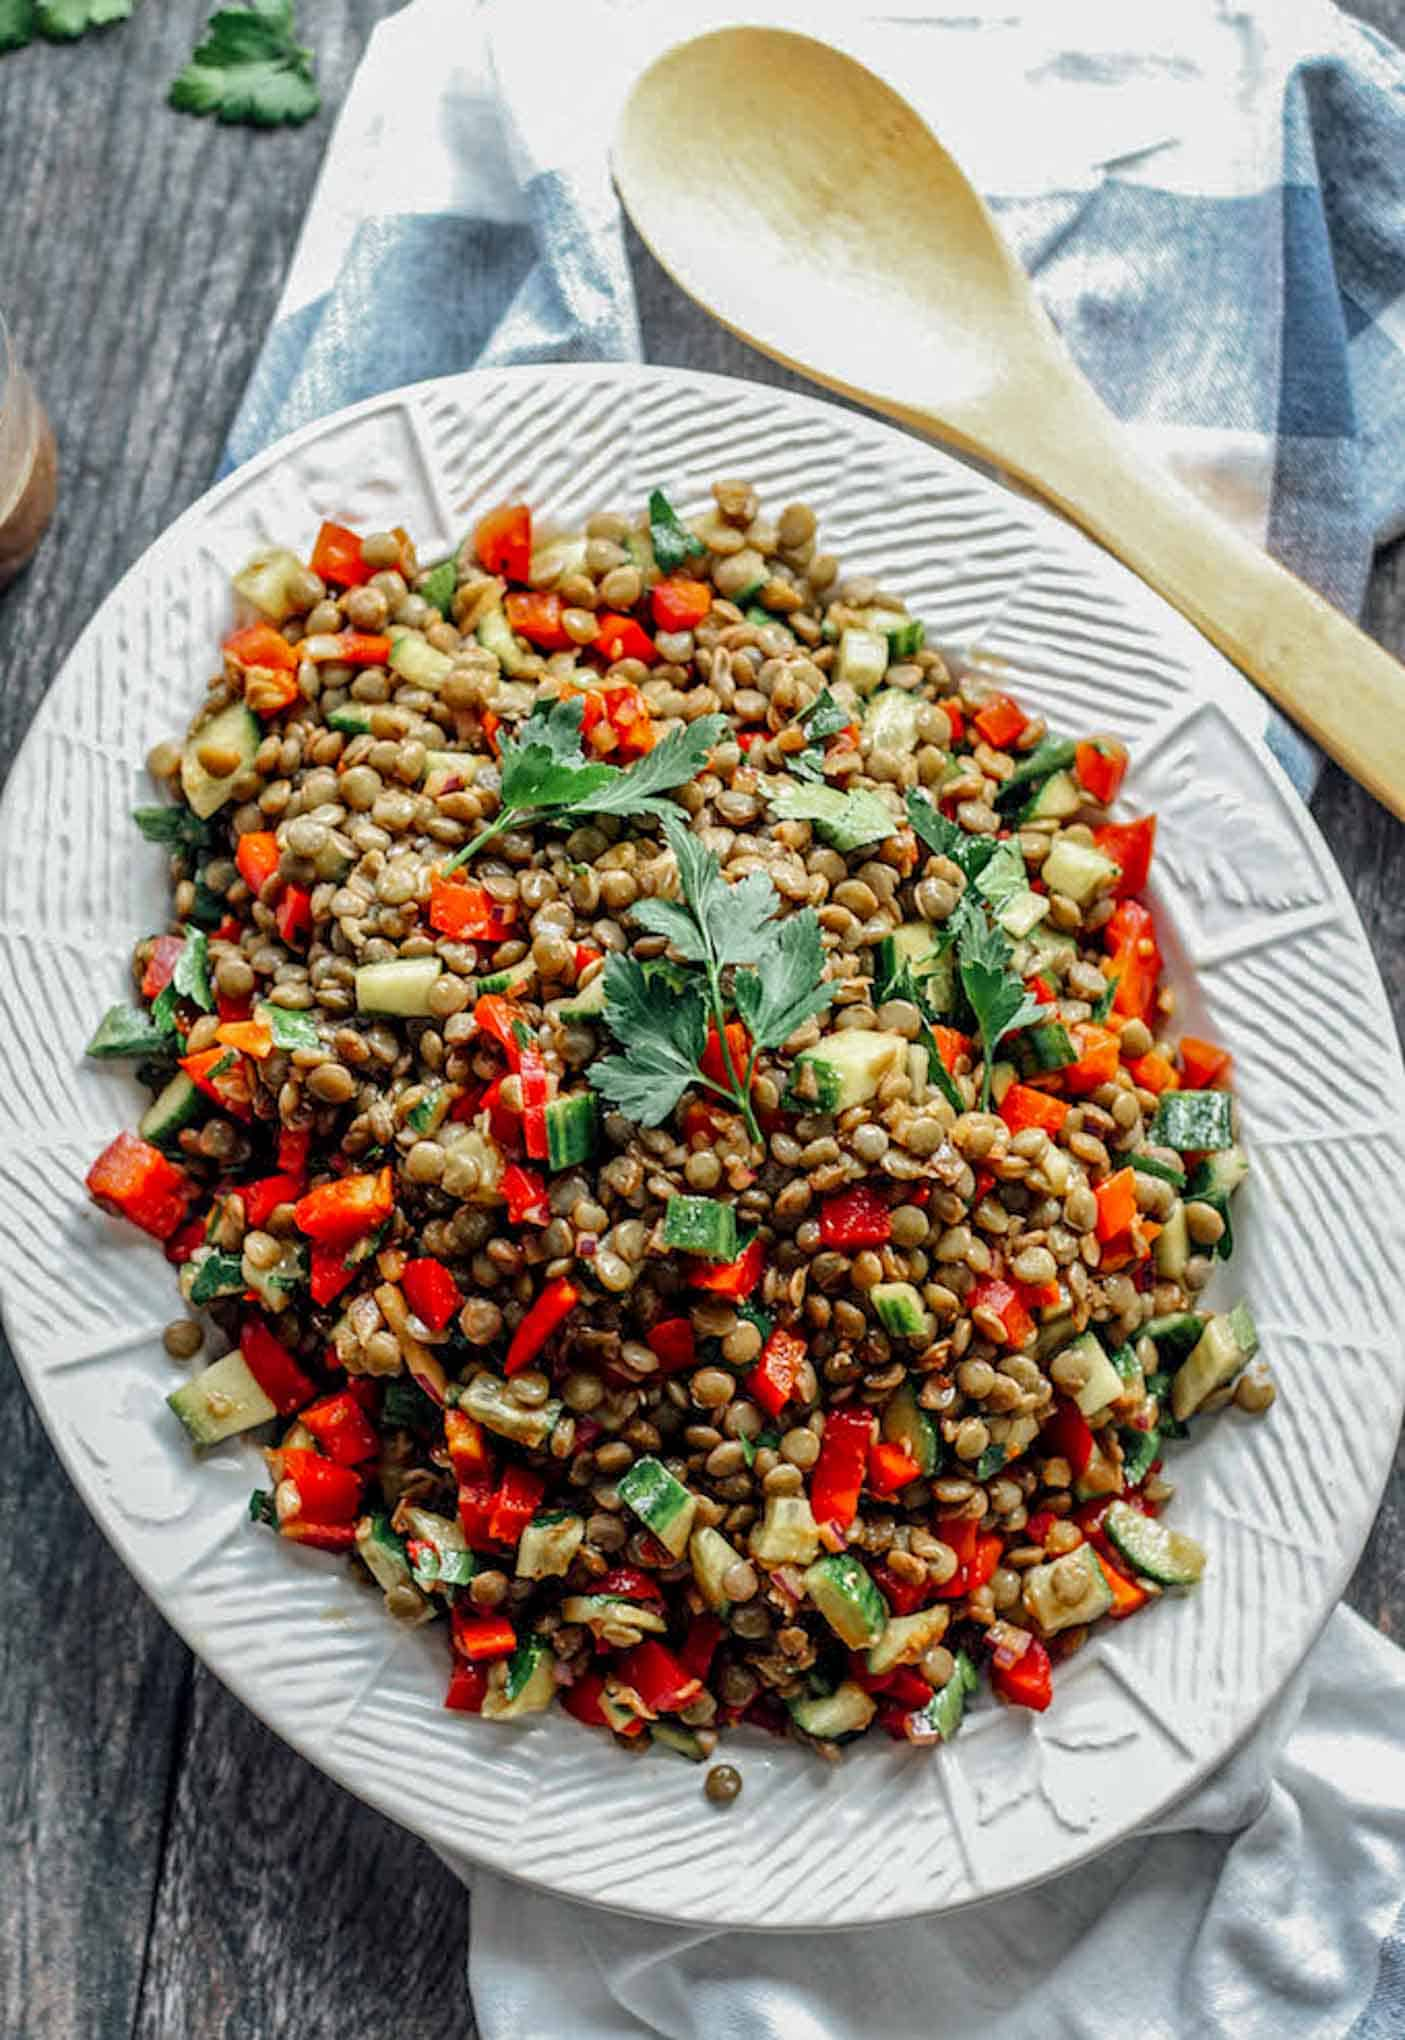 An overhead view of the balsamic lentil salad on a platter